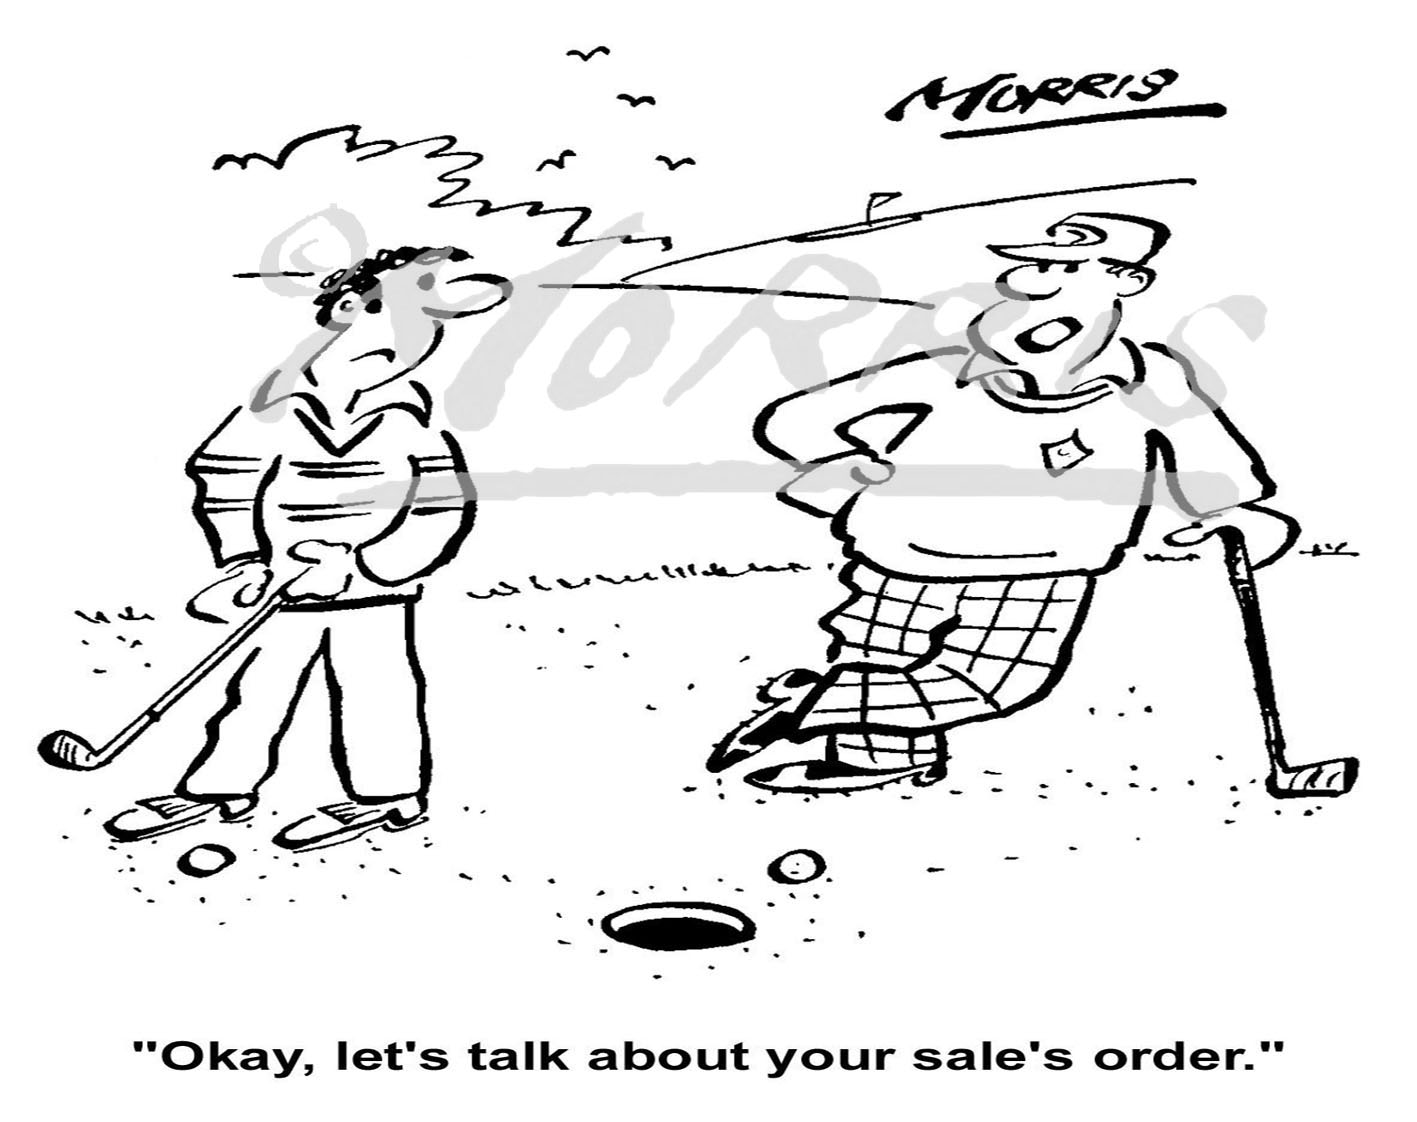 Golf sales order comic business cartoon – Ref: 0724bw